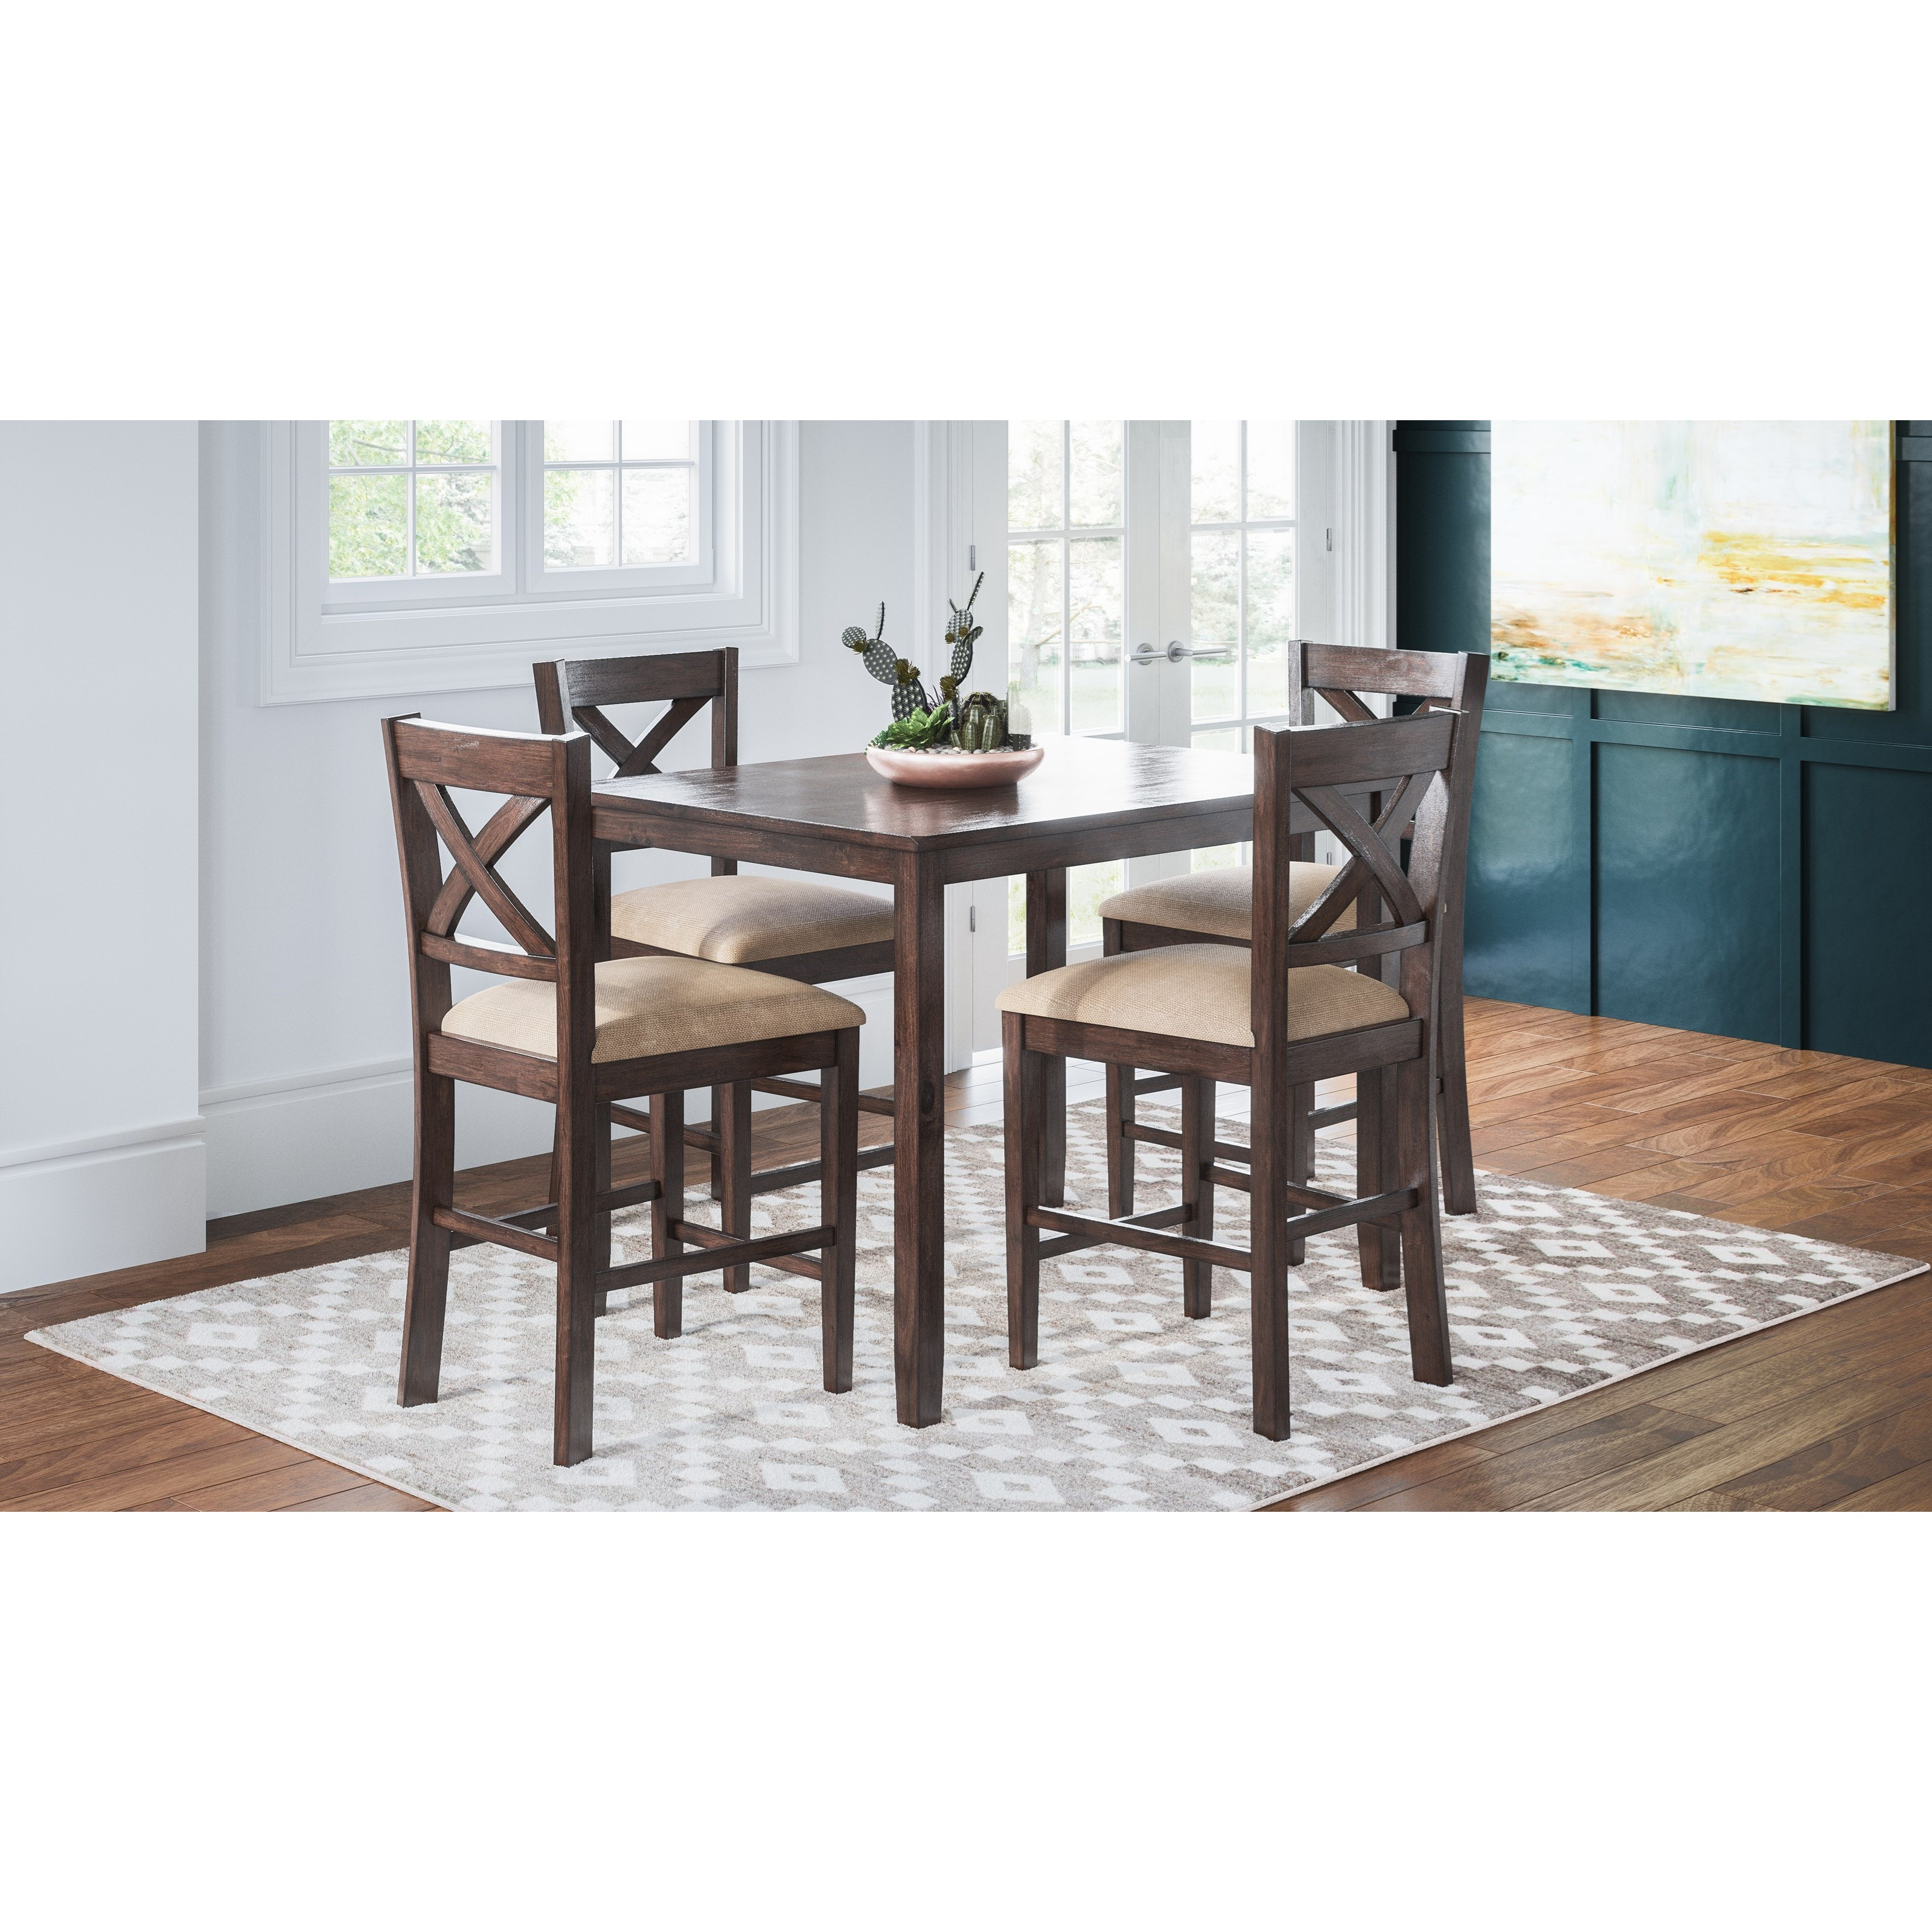 Brinkley Brinkley 5-Piece Counter Height Dining Set by Jofran at Morris Home